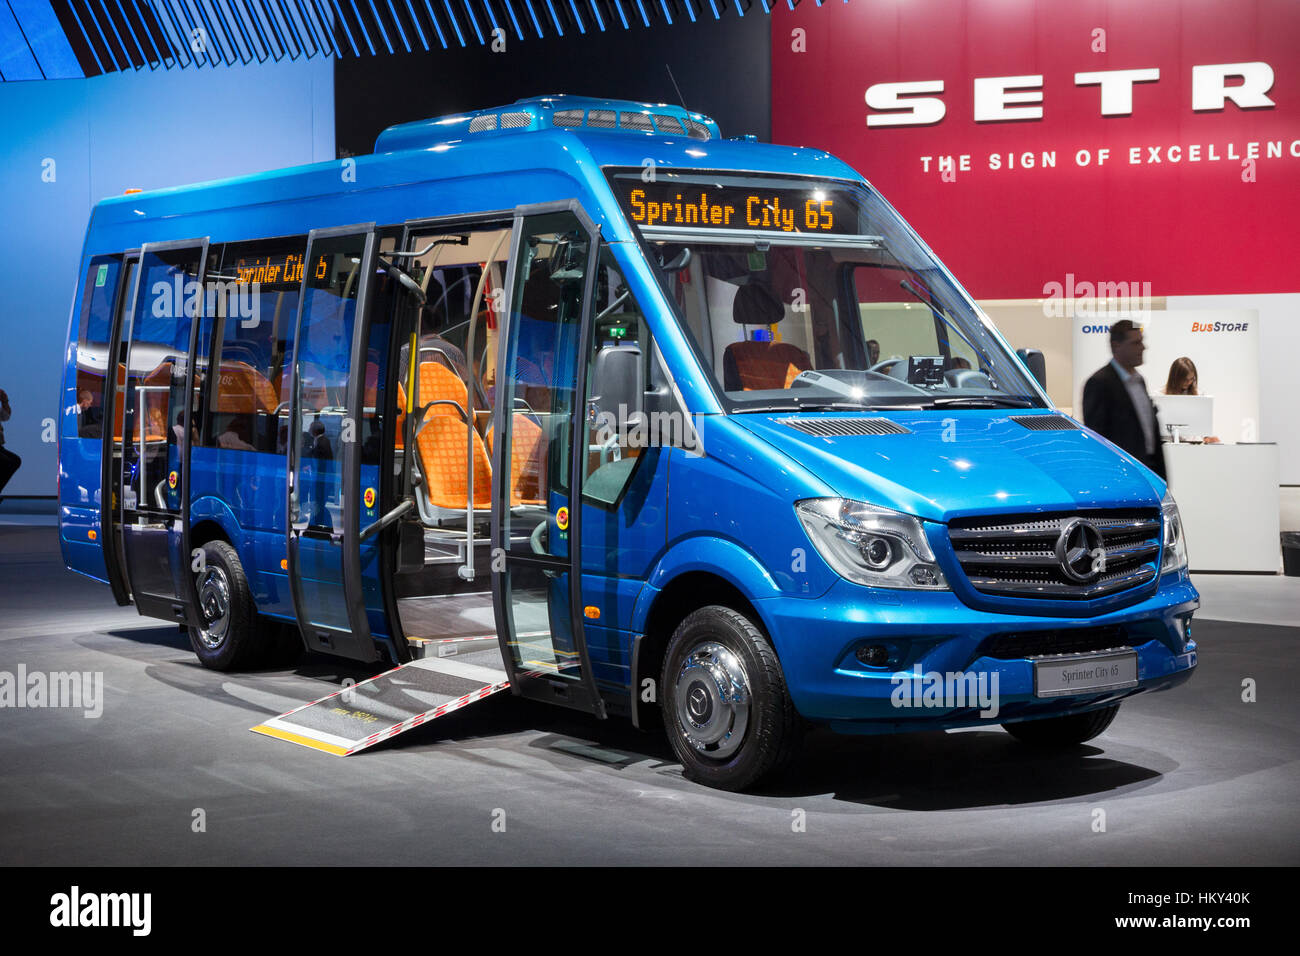 Hannover germany sep 21 2016 mercedes benz sprinter city 65 minibus presented at the international motor show for commercial vehicles